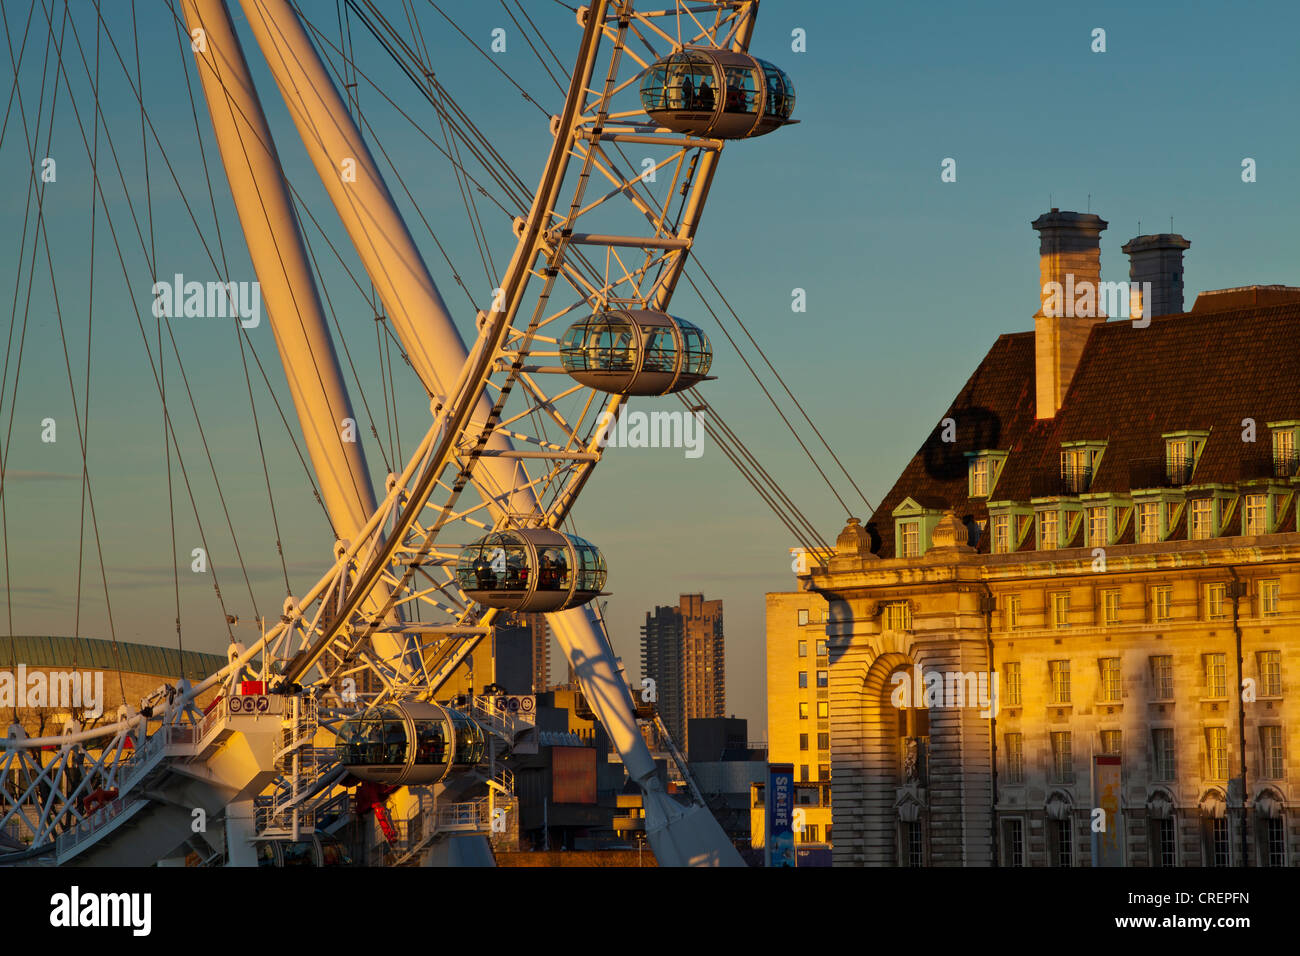 England, Greater London, London Borough of Lambeth. The London Eye (also known as the Millennium Wheel), the tallest - Stock Image